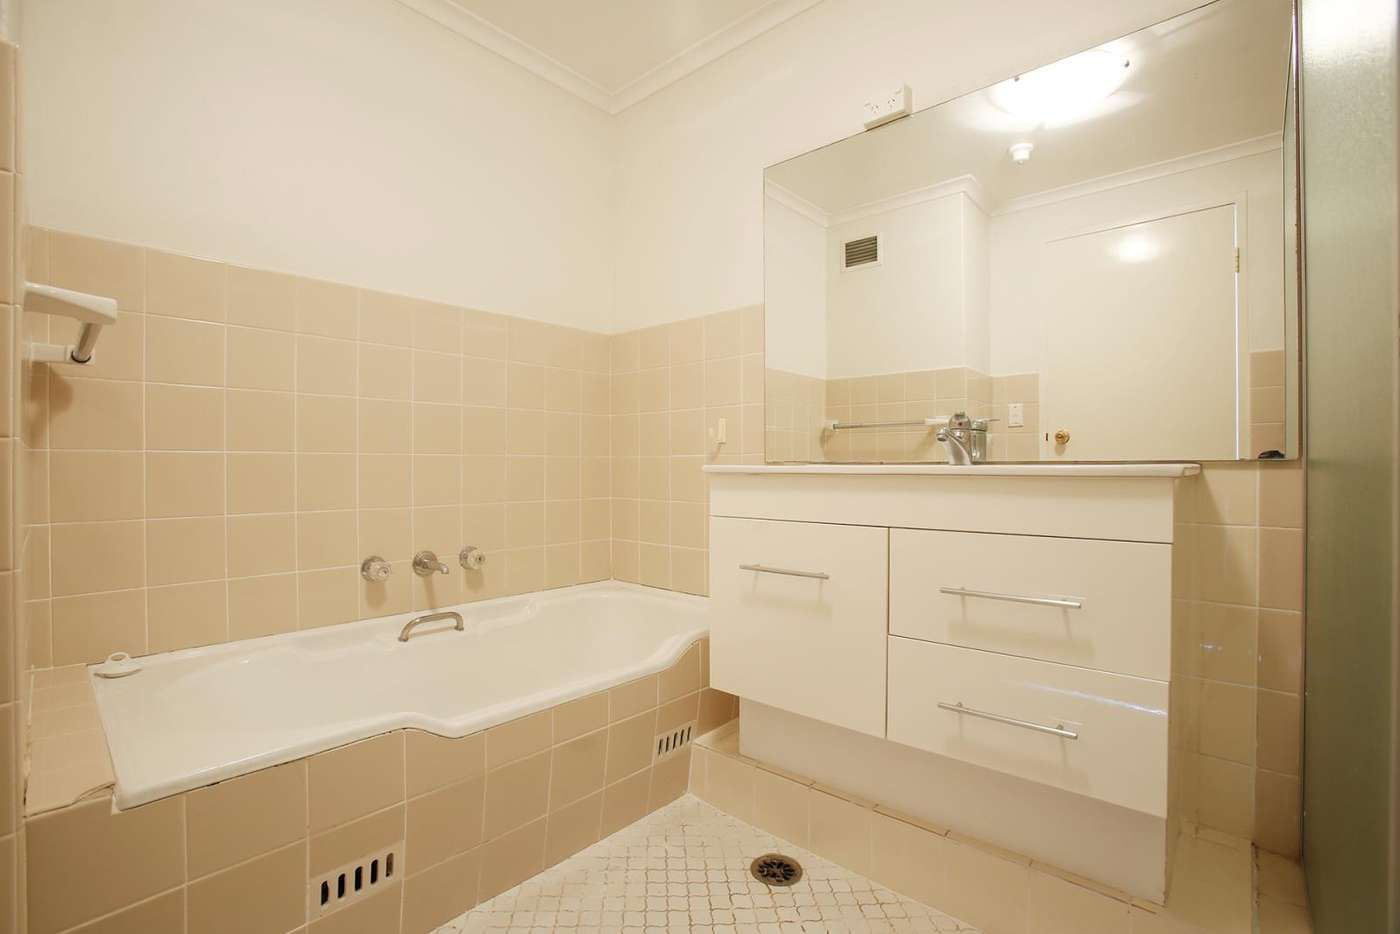 Sixth view of Homely apartment listing, 35/9 Hampden Avenue, Cremorne NSW 2090